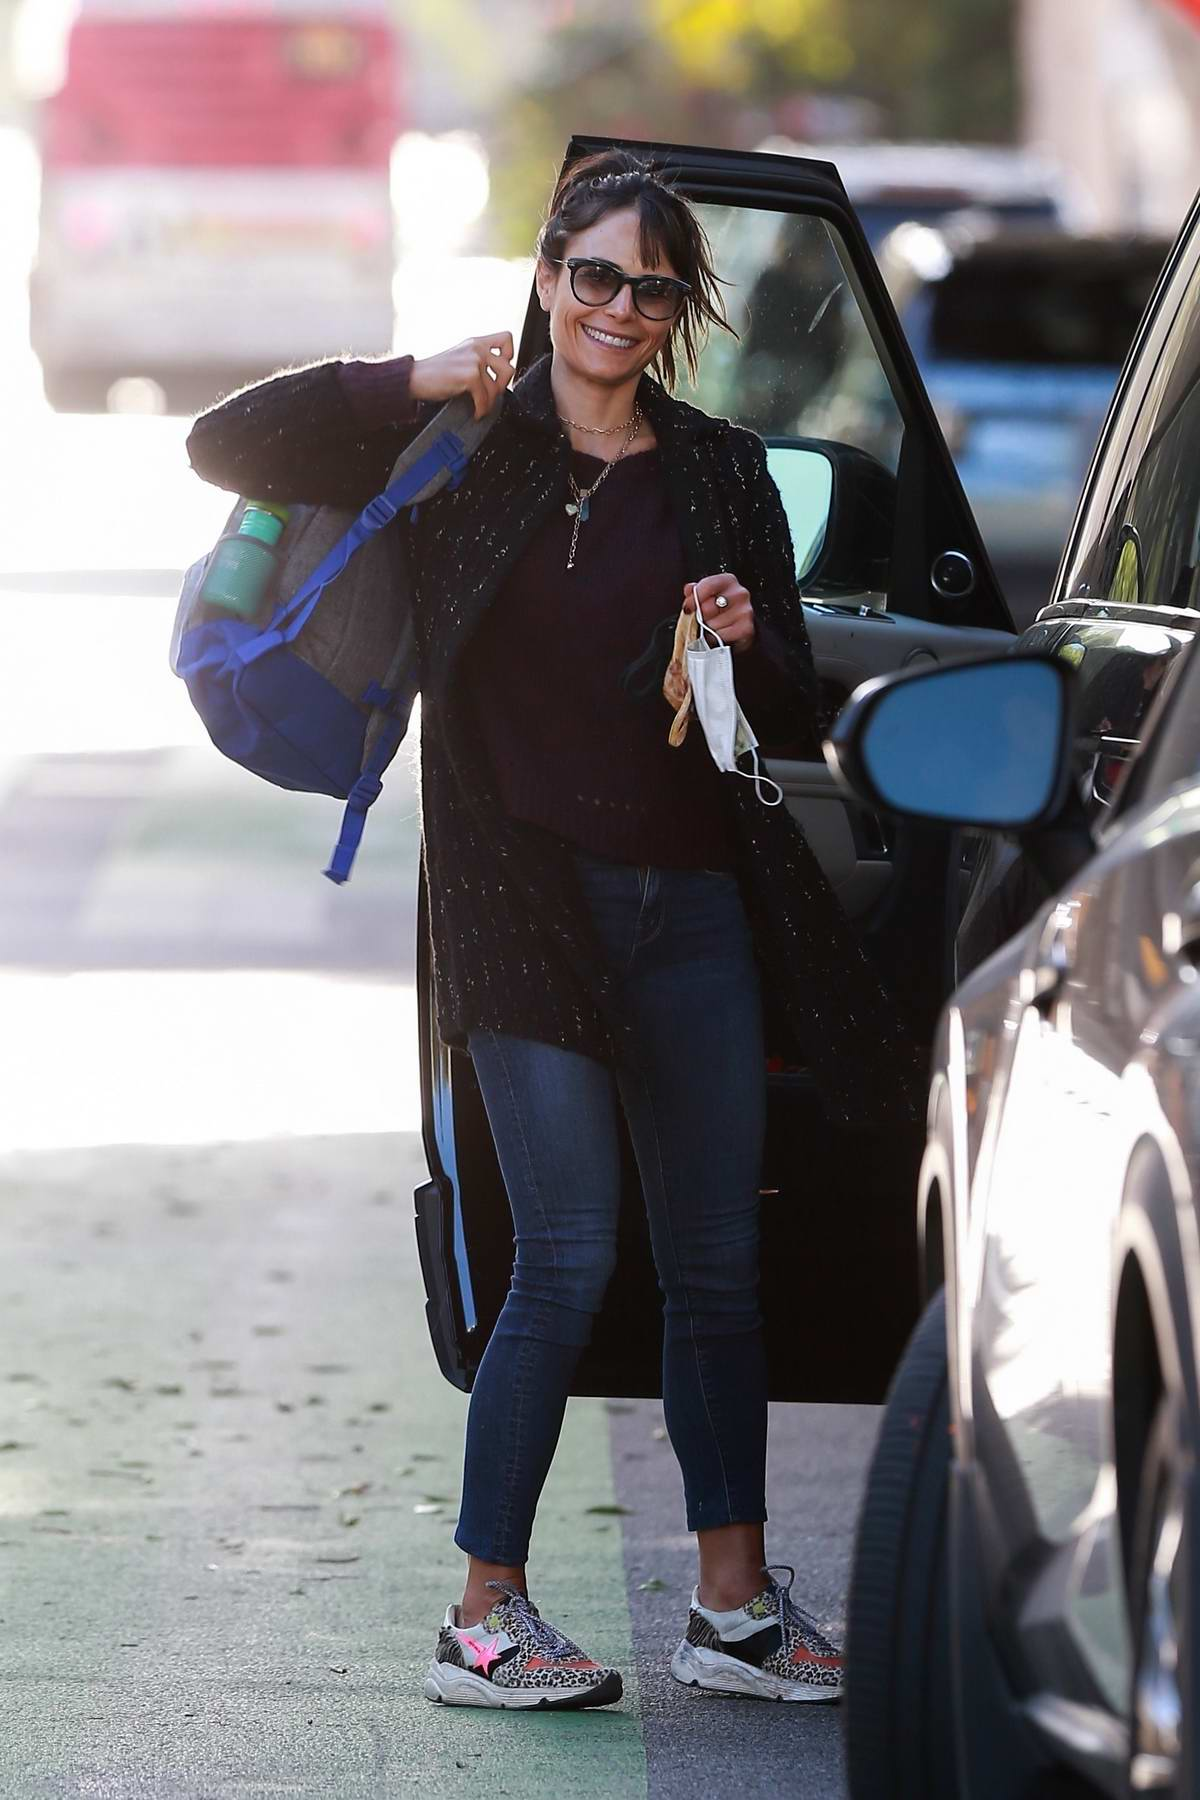 Jordana Brewster is all smiles as she is spotted heading out in Santa Monica, California